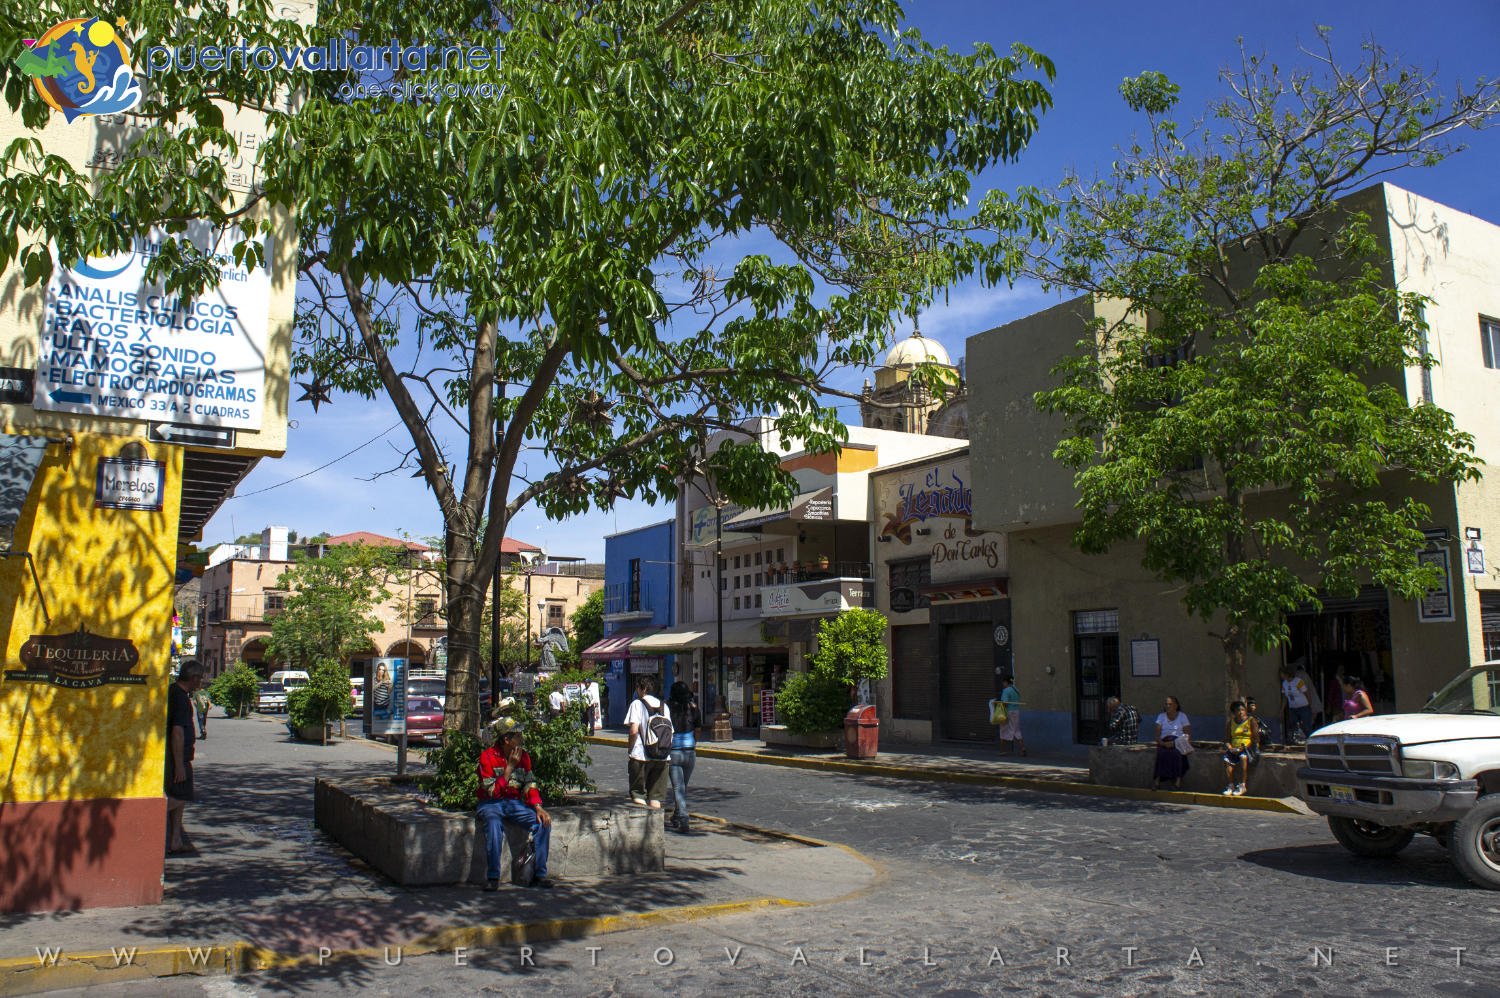 Streets of Tequila, Jalisco, Mexico